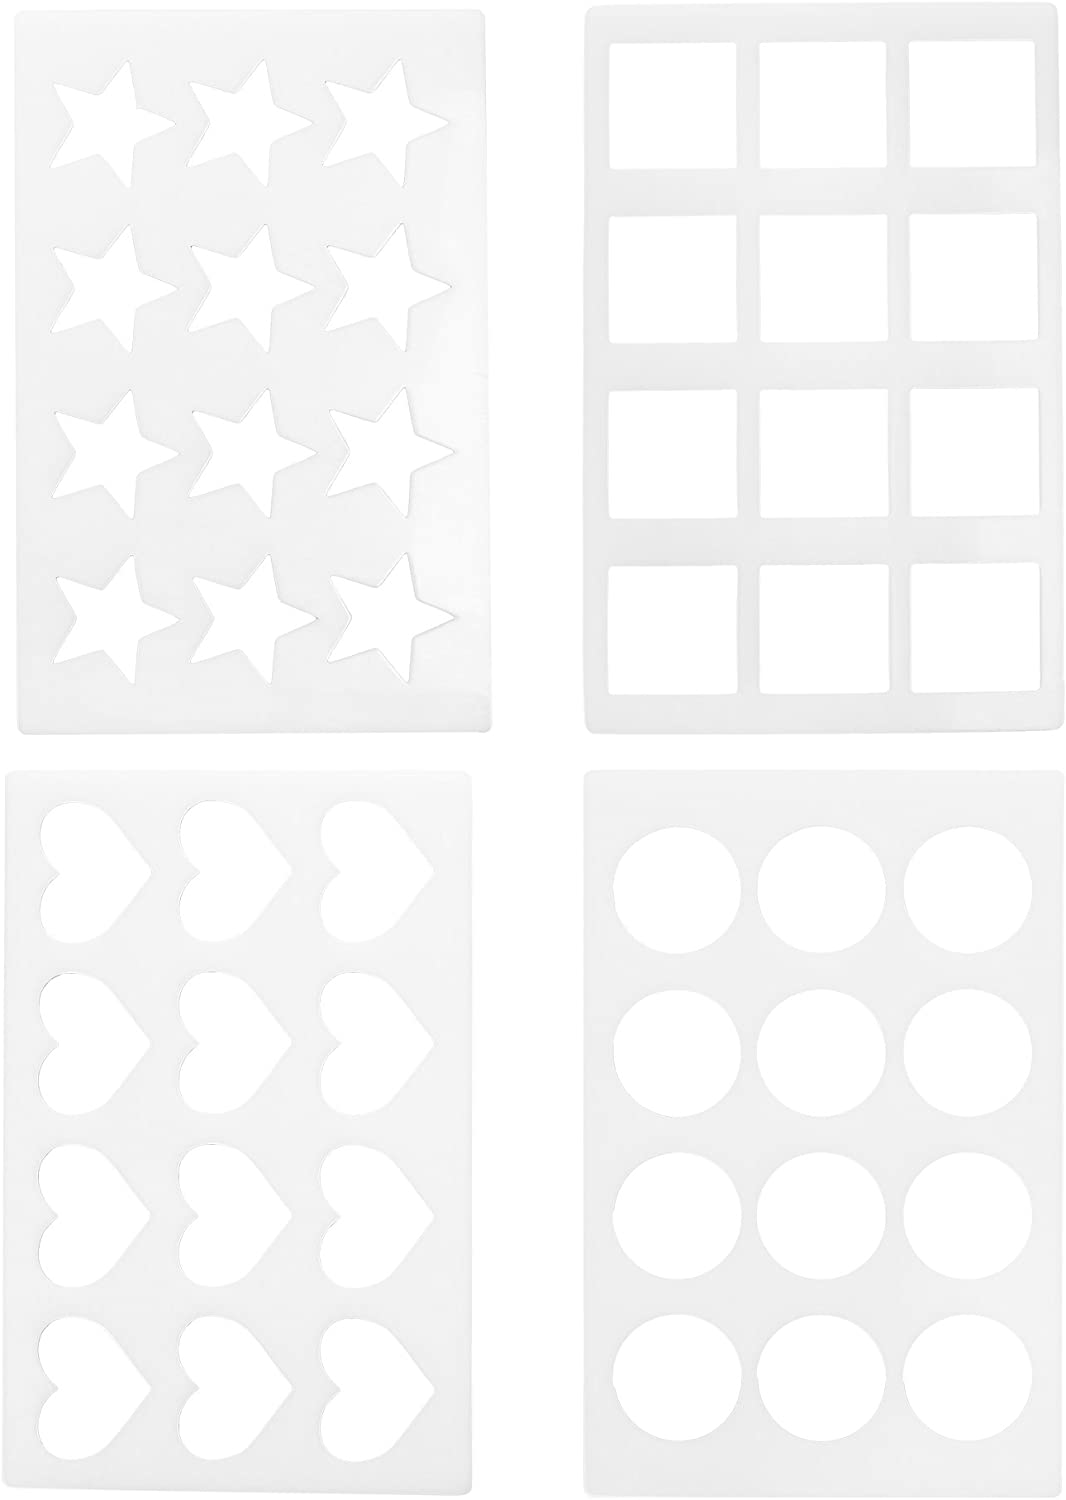 COSMOS 4 Pcs Different Designs Assorted Chocolate Chablon Cookies Stencil Mold for Cake Decoration